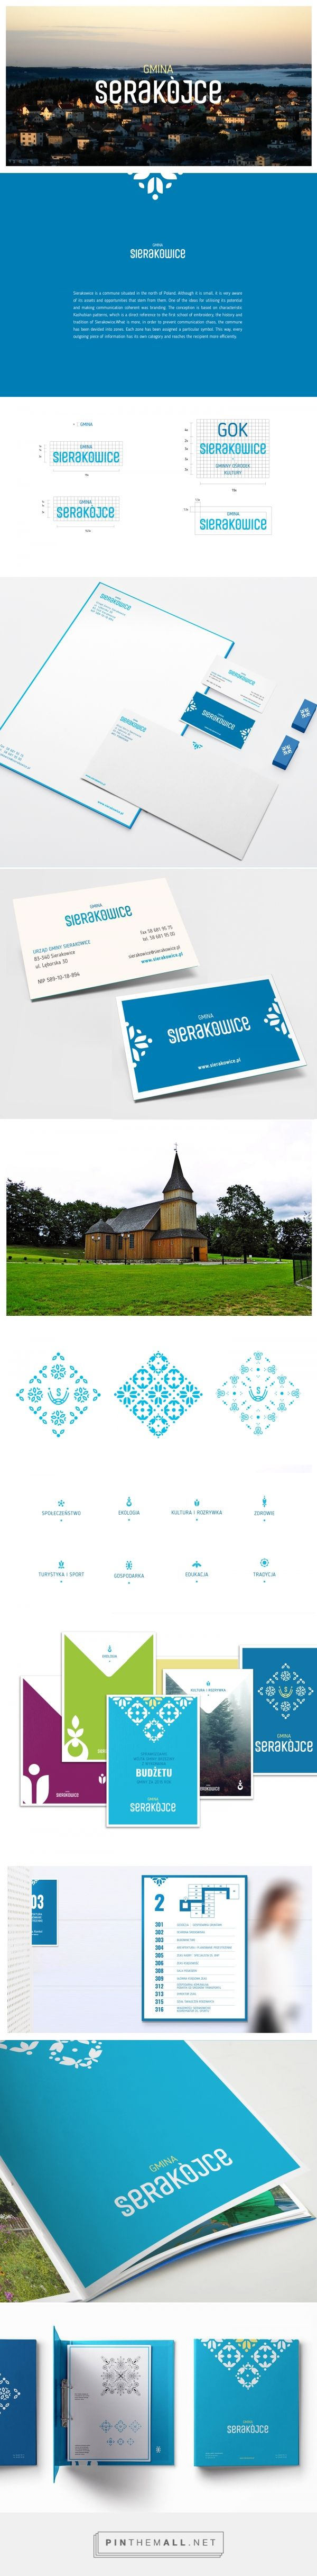 Gmina   Sierakowice Identity.  Sierakowice is a commune situated in the north of Poland. Although it is small, it is very aware of its assets and opportunities that stem from them.